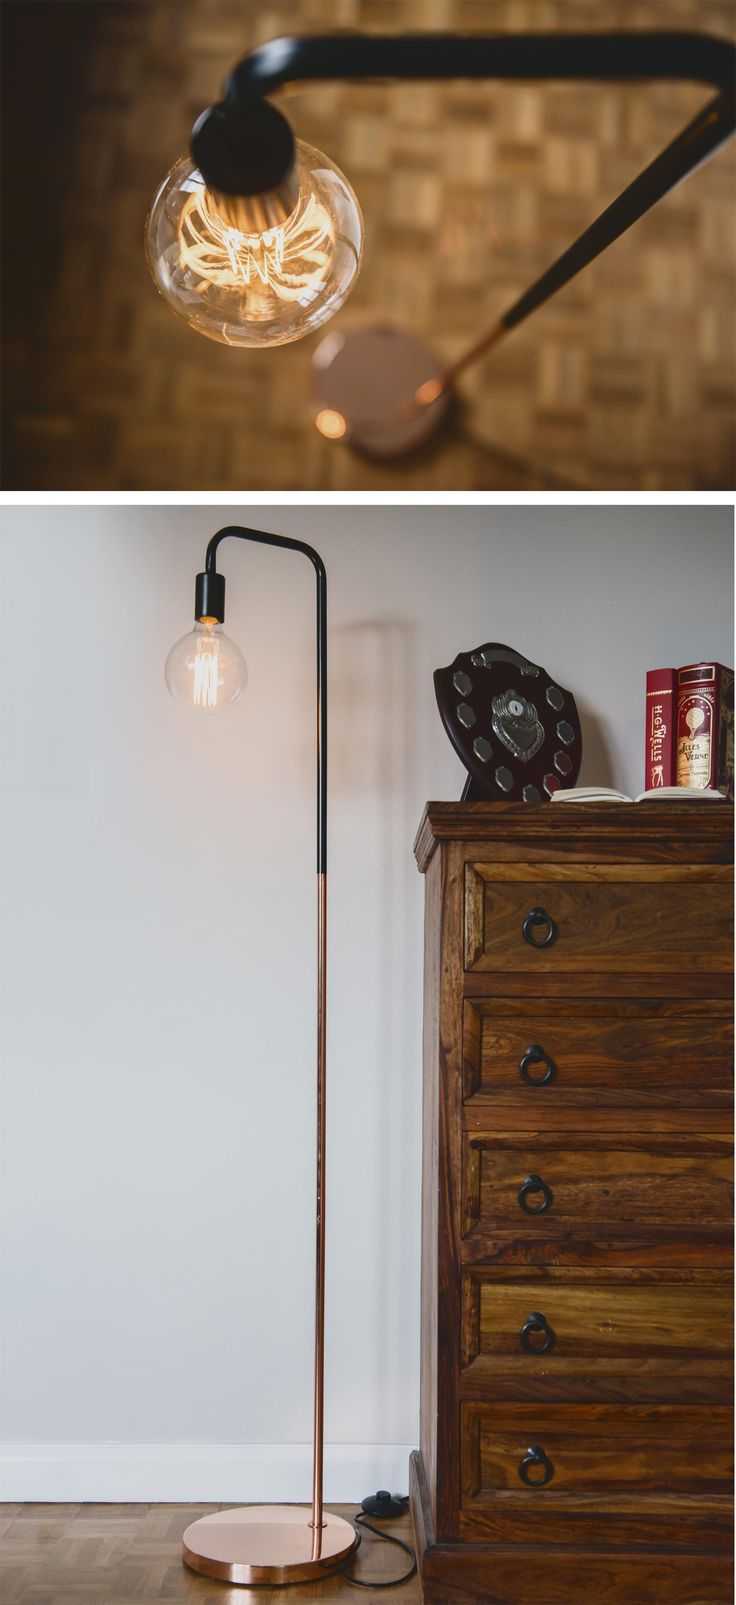 Part of our new 'Vintage Lighting Range' - the Oulu standing light is a taller version of its counter-part, the 'Oulu Desk Lamp' but is remains an eye-pleasing design, with its weighted-base and copper/black finish - as well as featuring a large vintage Edison-bulb*. This model is suitable as a standing lamp and would work well in any domestic or work environment.  You won't be sorry you bought this - It would make a great light to read-by and feature proudly in your home.